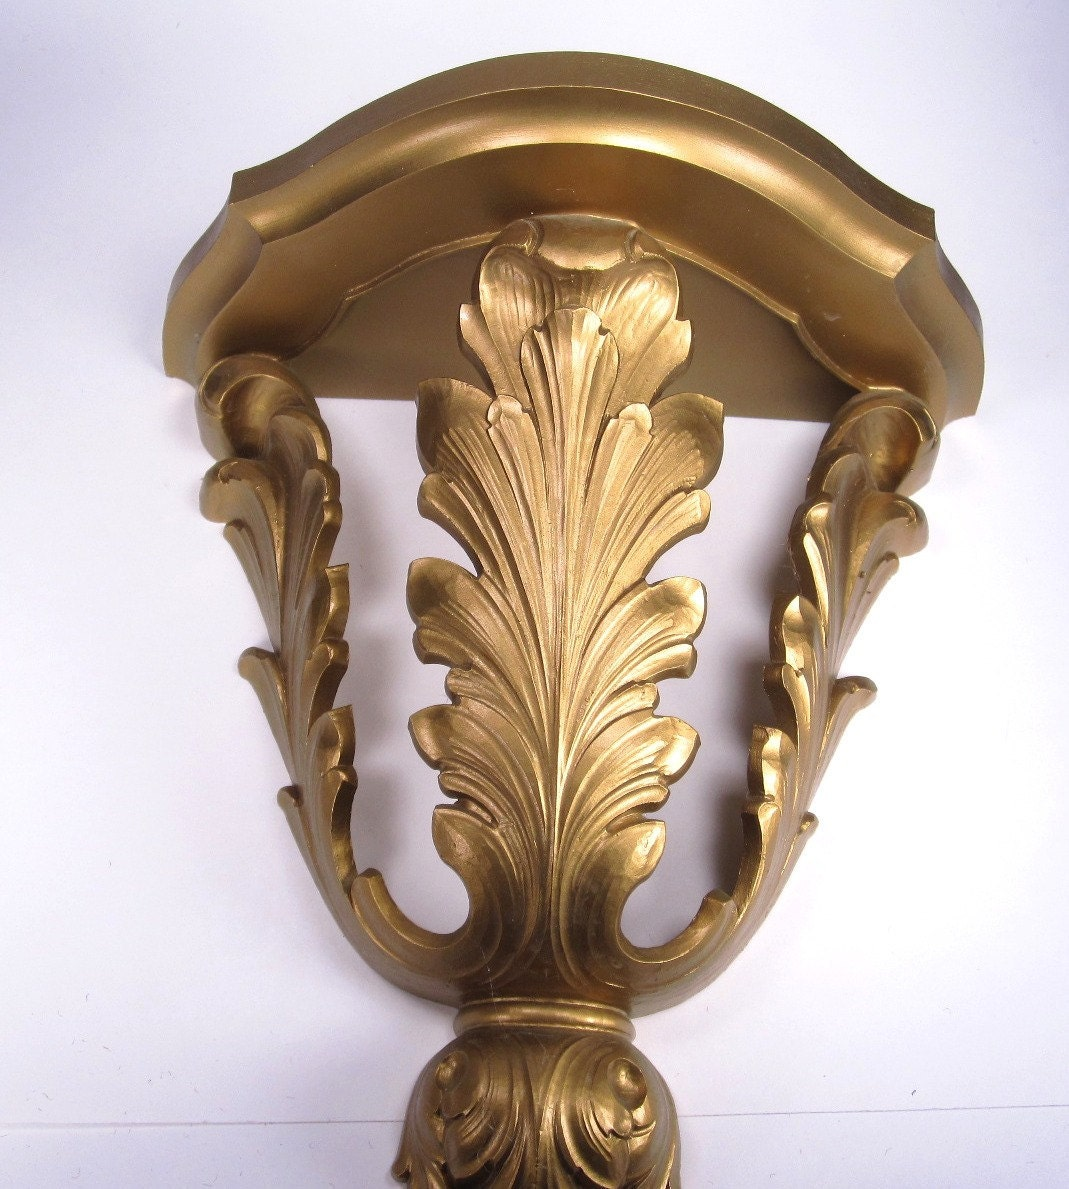 Vintage homco 1970s wall shelf or sconce gold wall decor - Decorative wall sconce ...